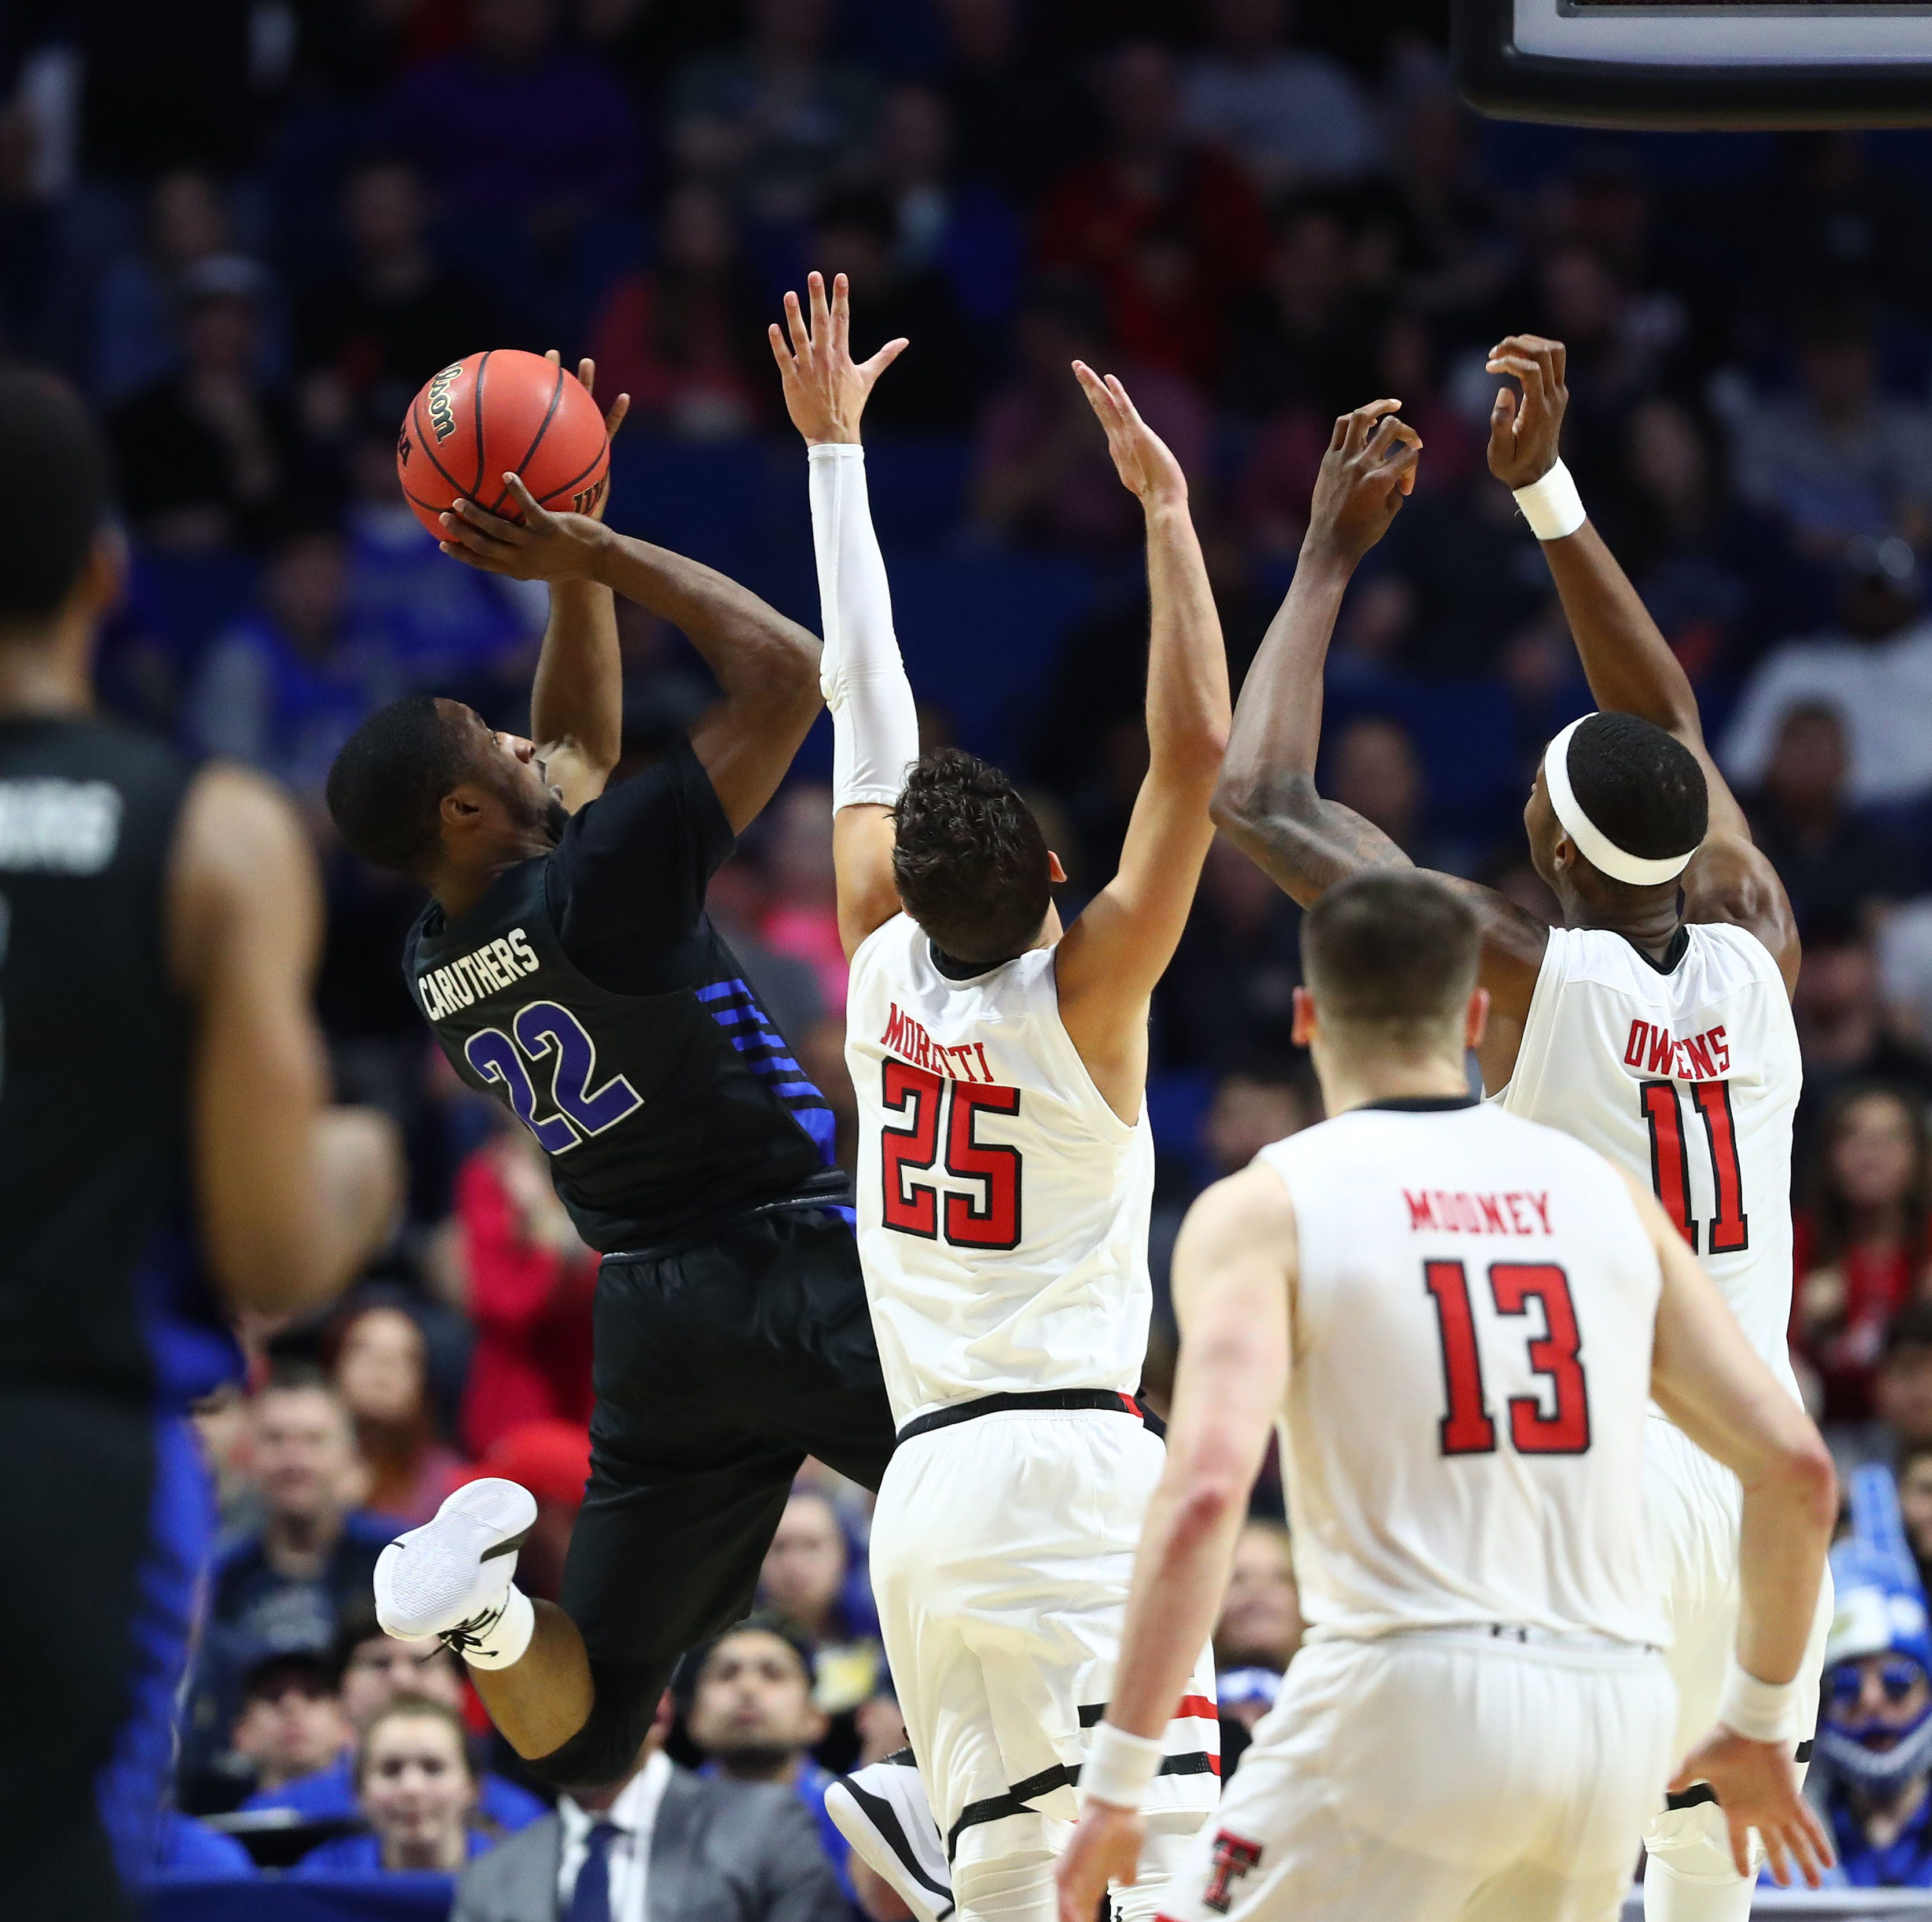 Texas Tech defense puts clamps down on Buffalo to return to the Sweet 16